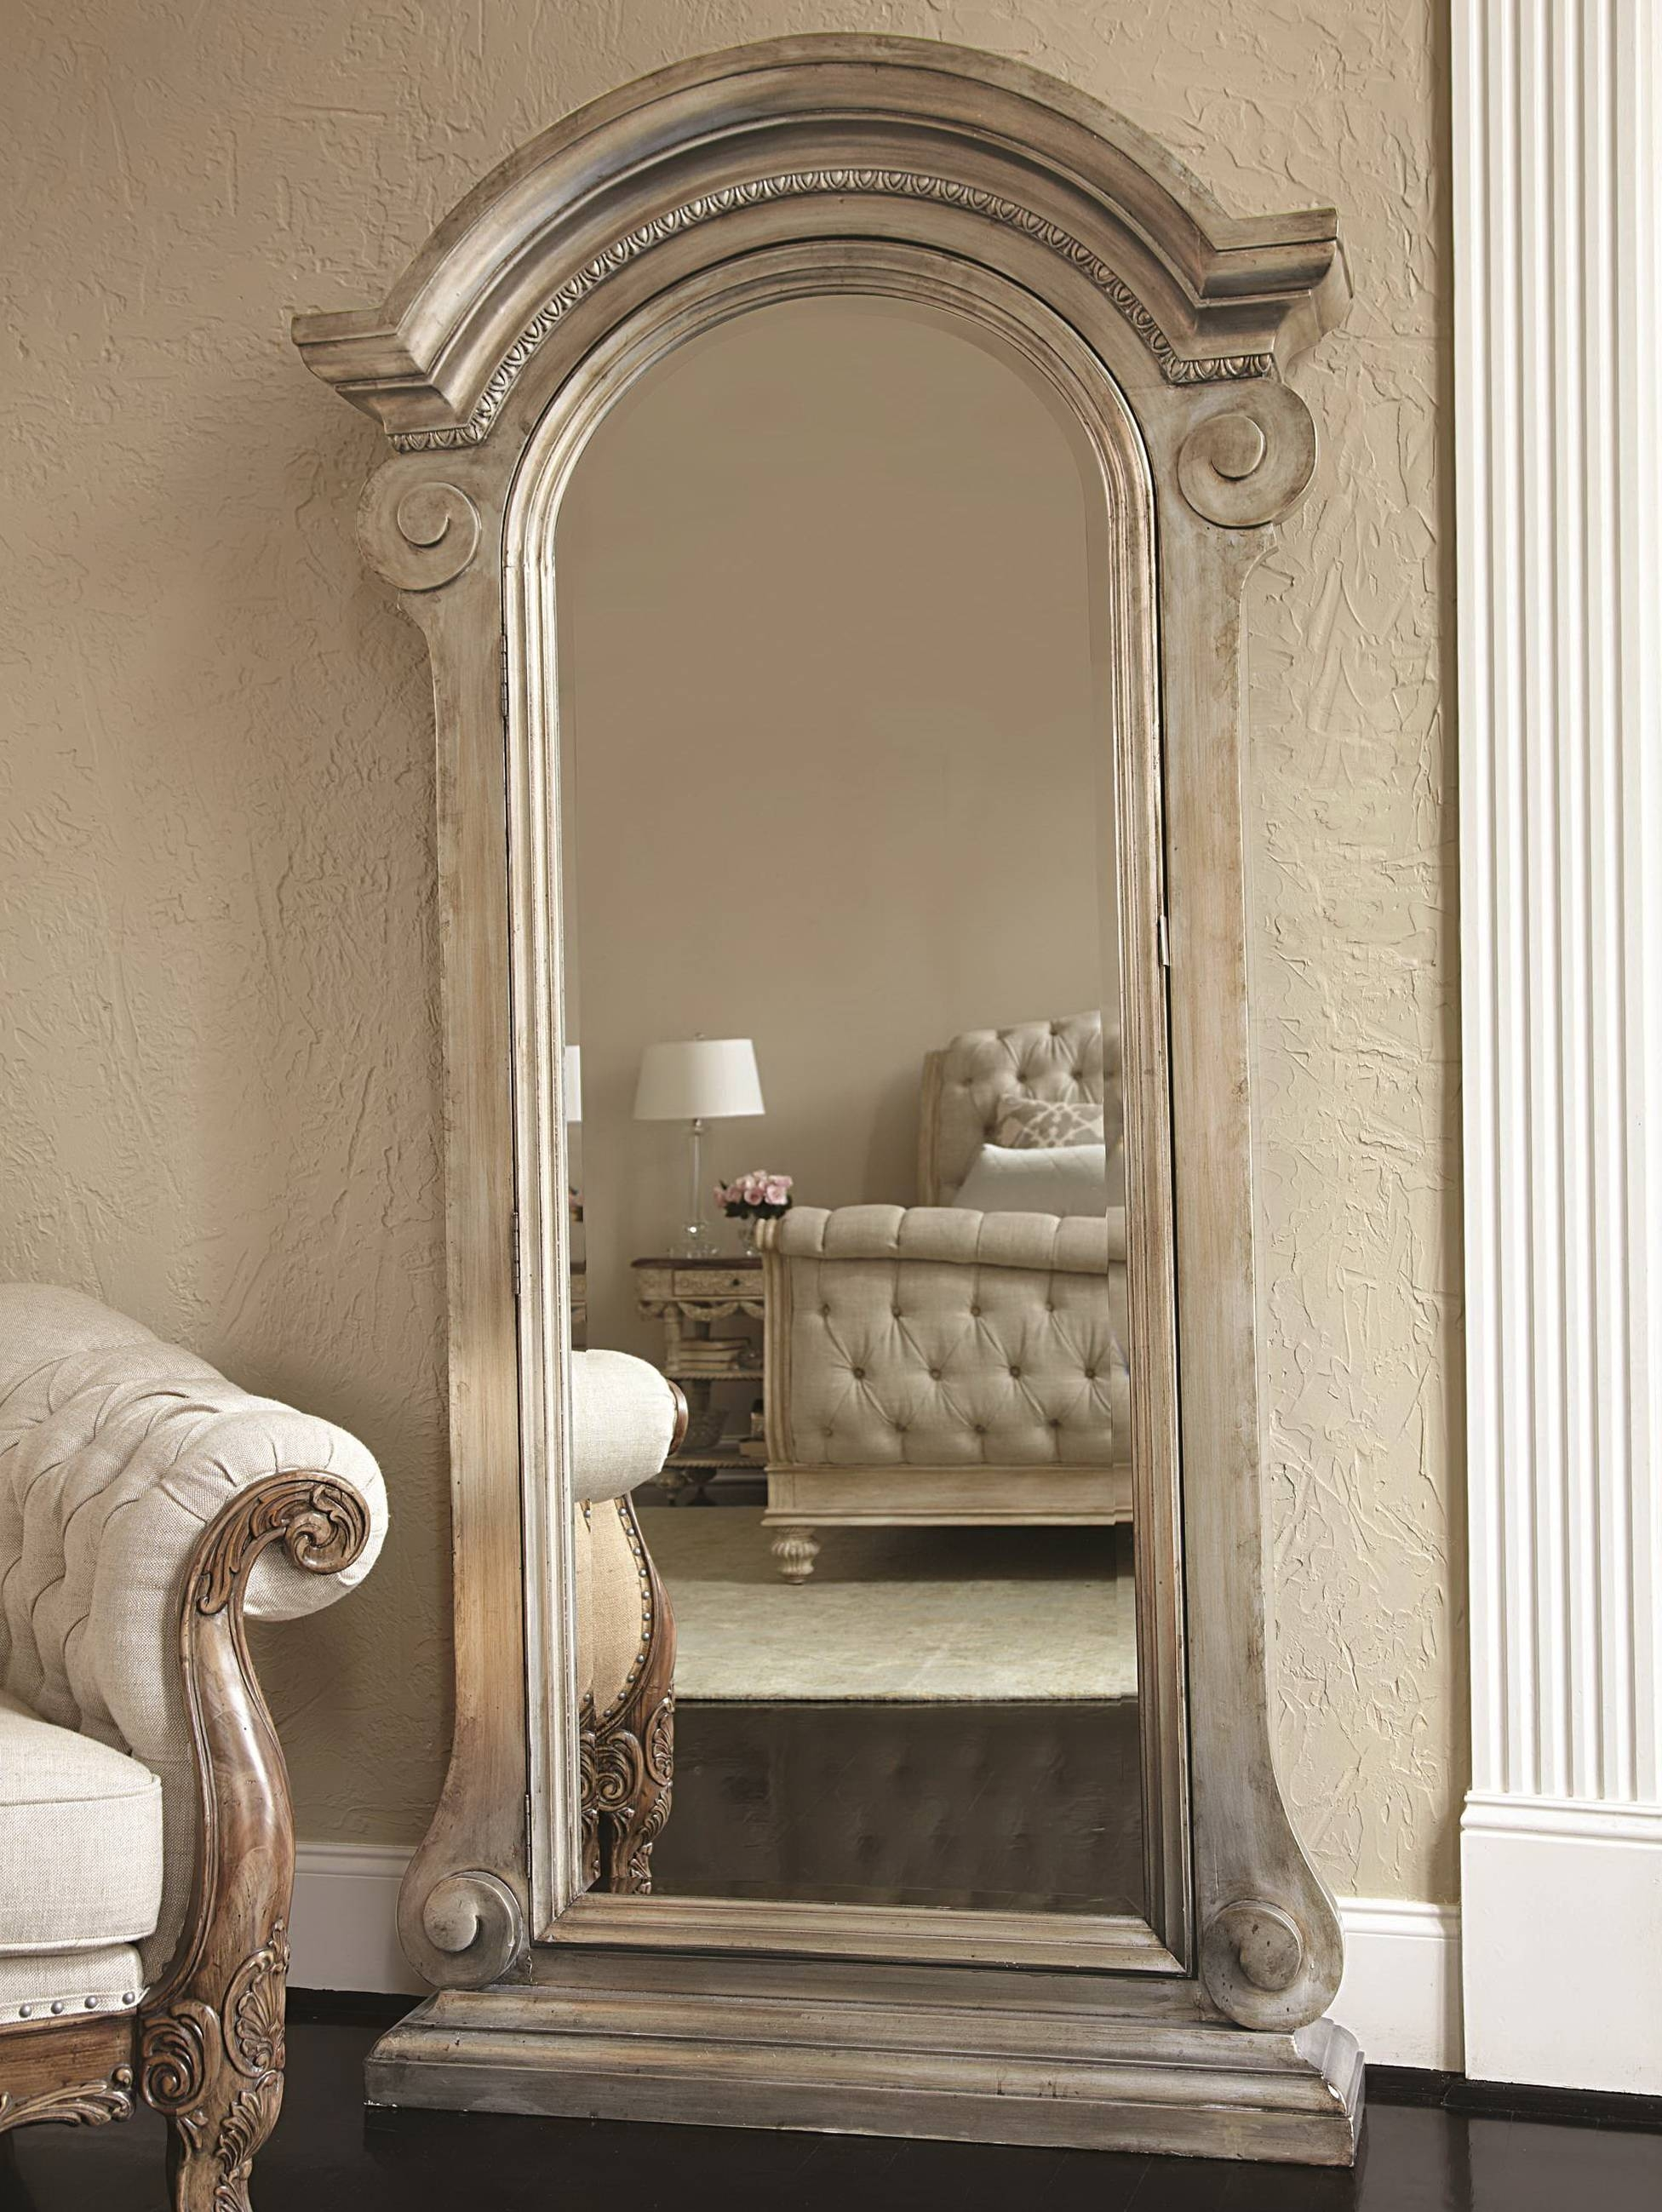 Armoires Floor Standing Mirror Jewelry Armoire Standing Jewelry within Silver Cheval Mirrors (Image 1 of 25)